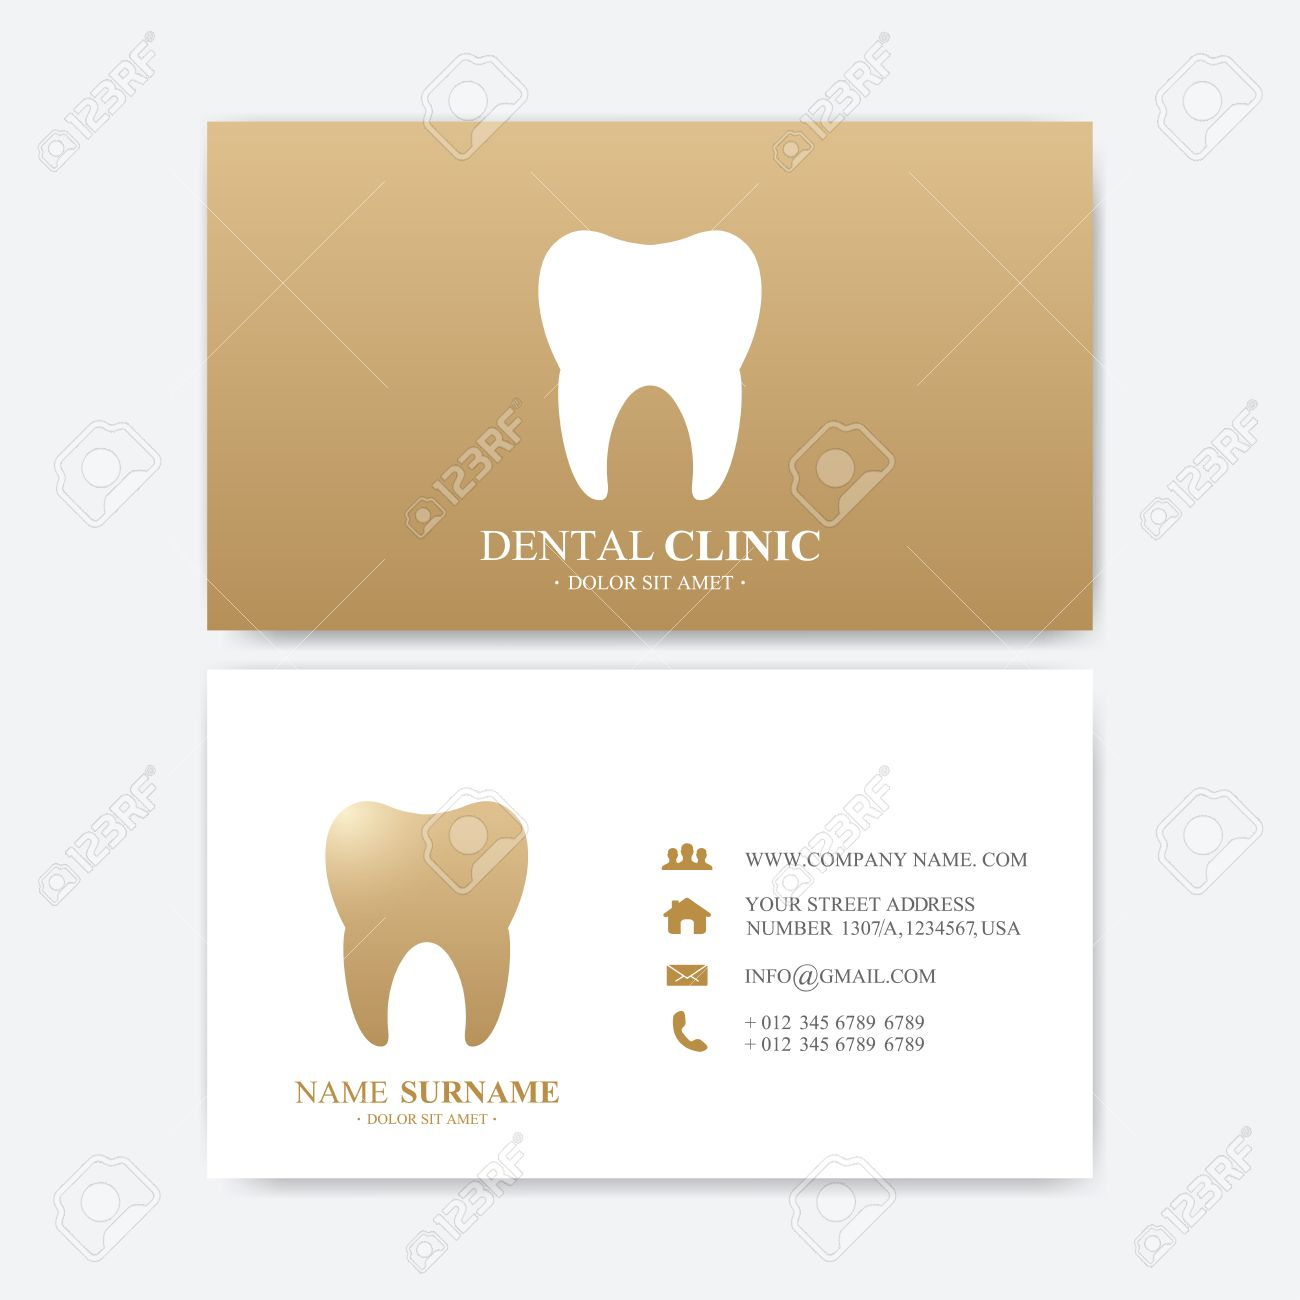 Business card printing killeen tx gallery card design and card business cards killeen texas gallery card design and card template enchanting business cards arlington tx composition reheart Images